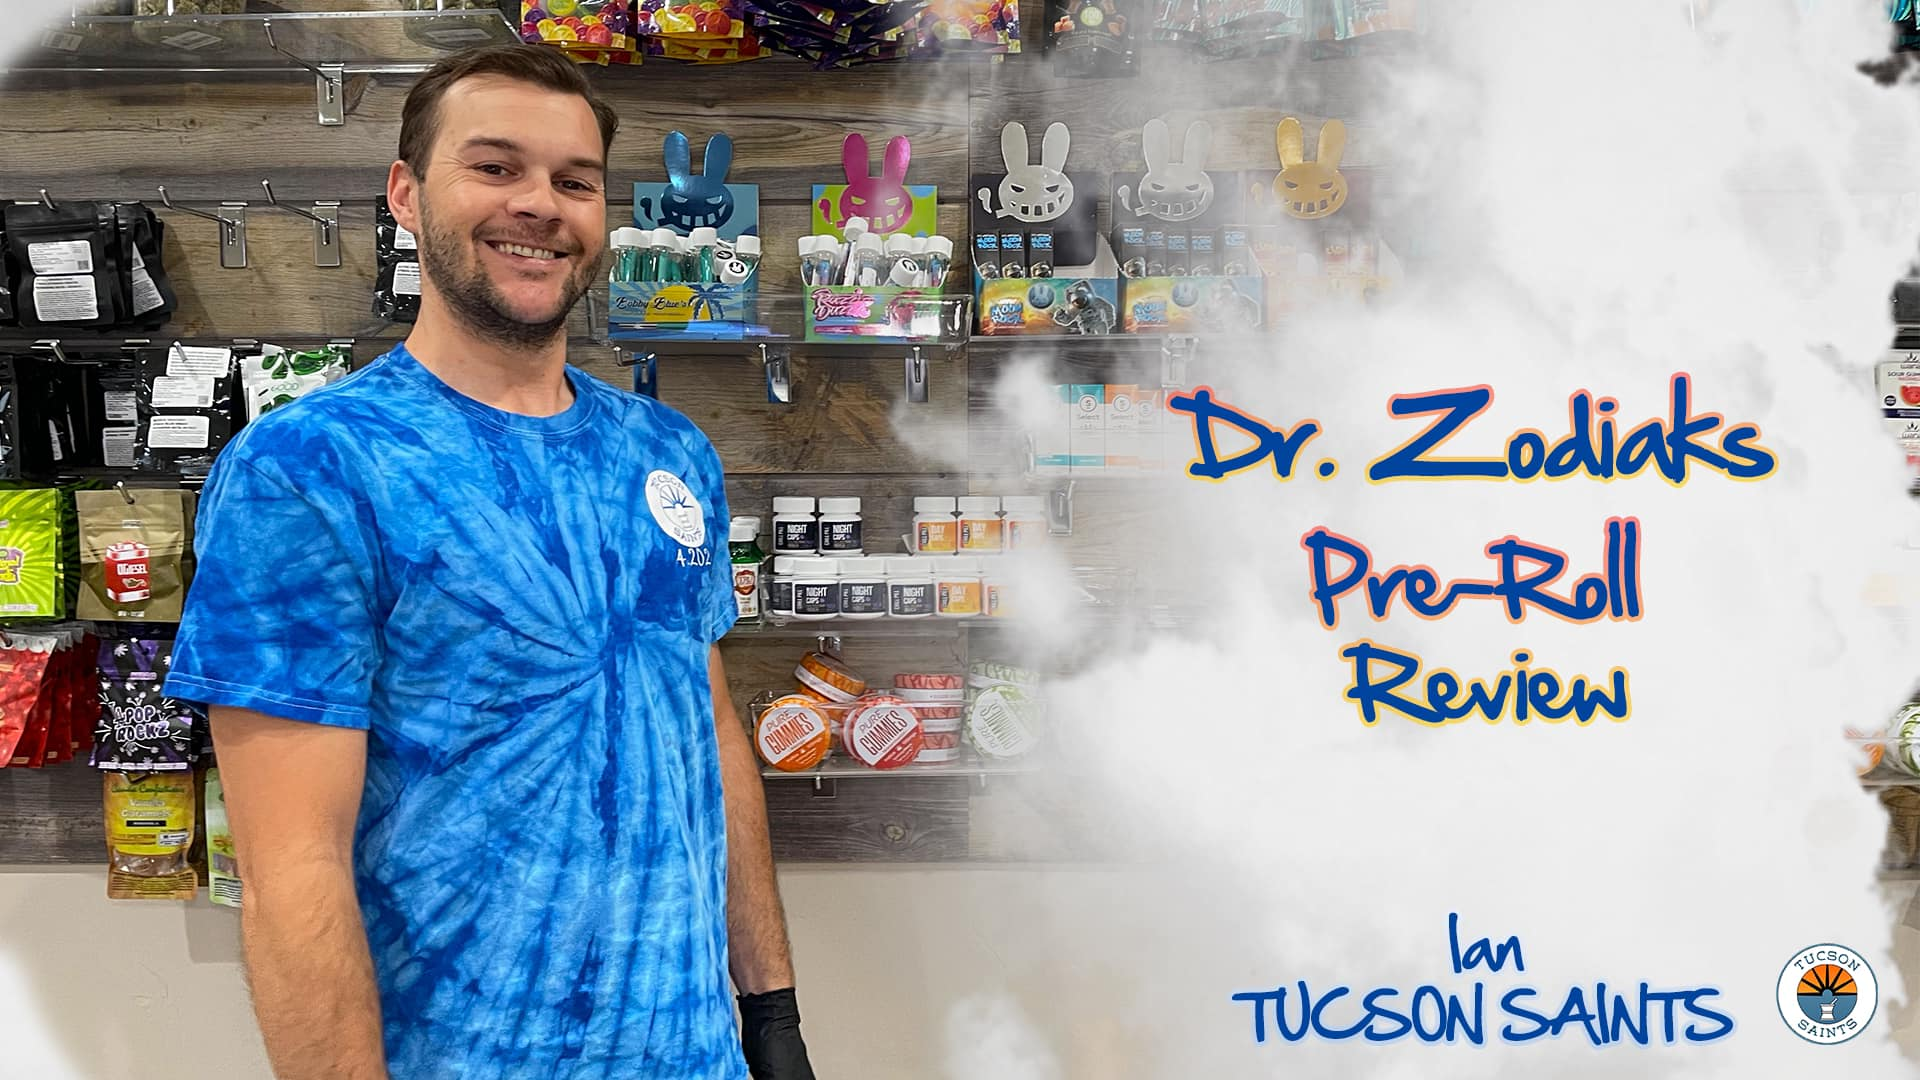 dr zodiak pre roll review by ian dispensary tucson